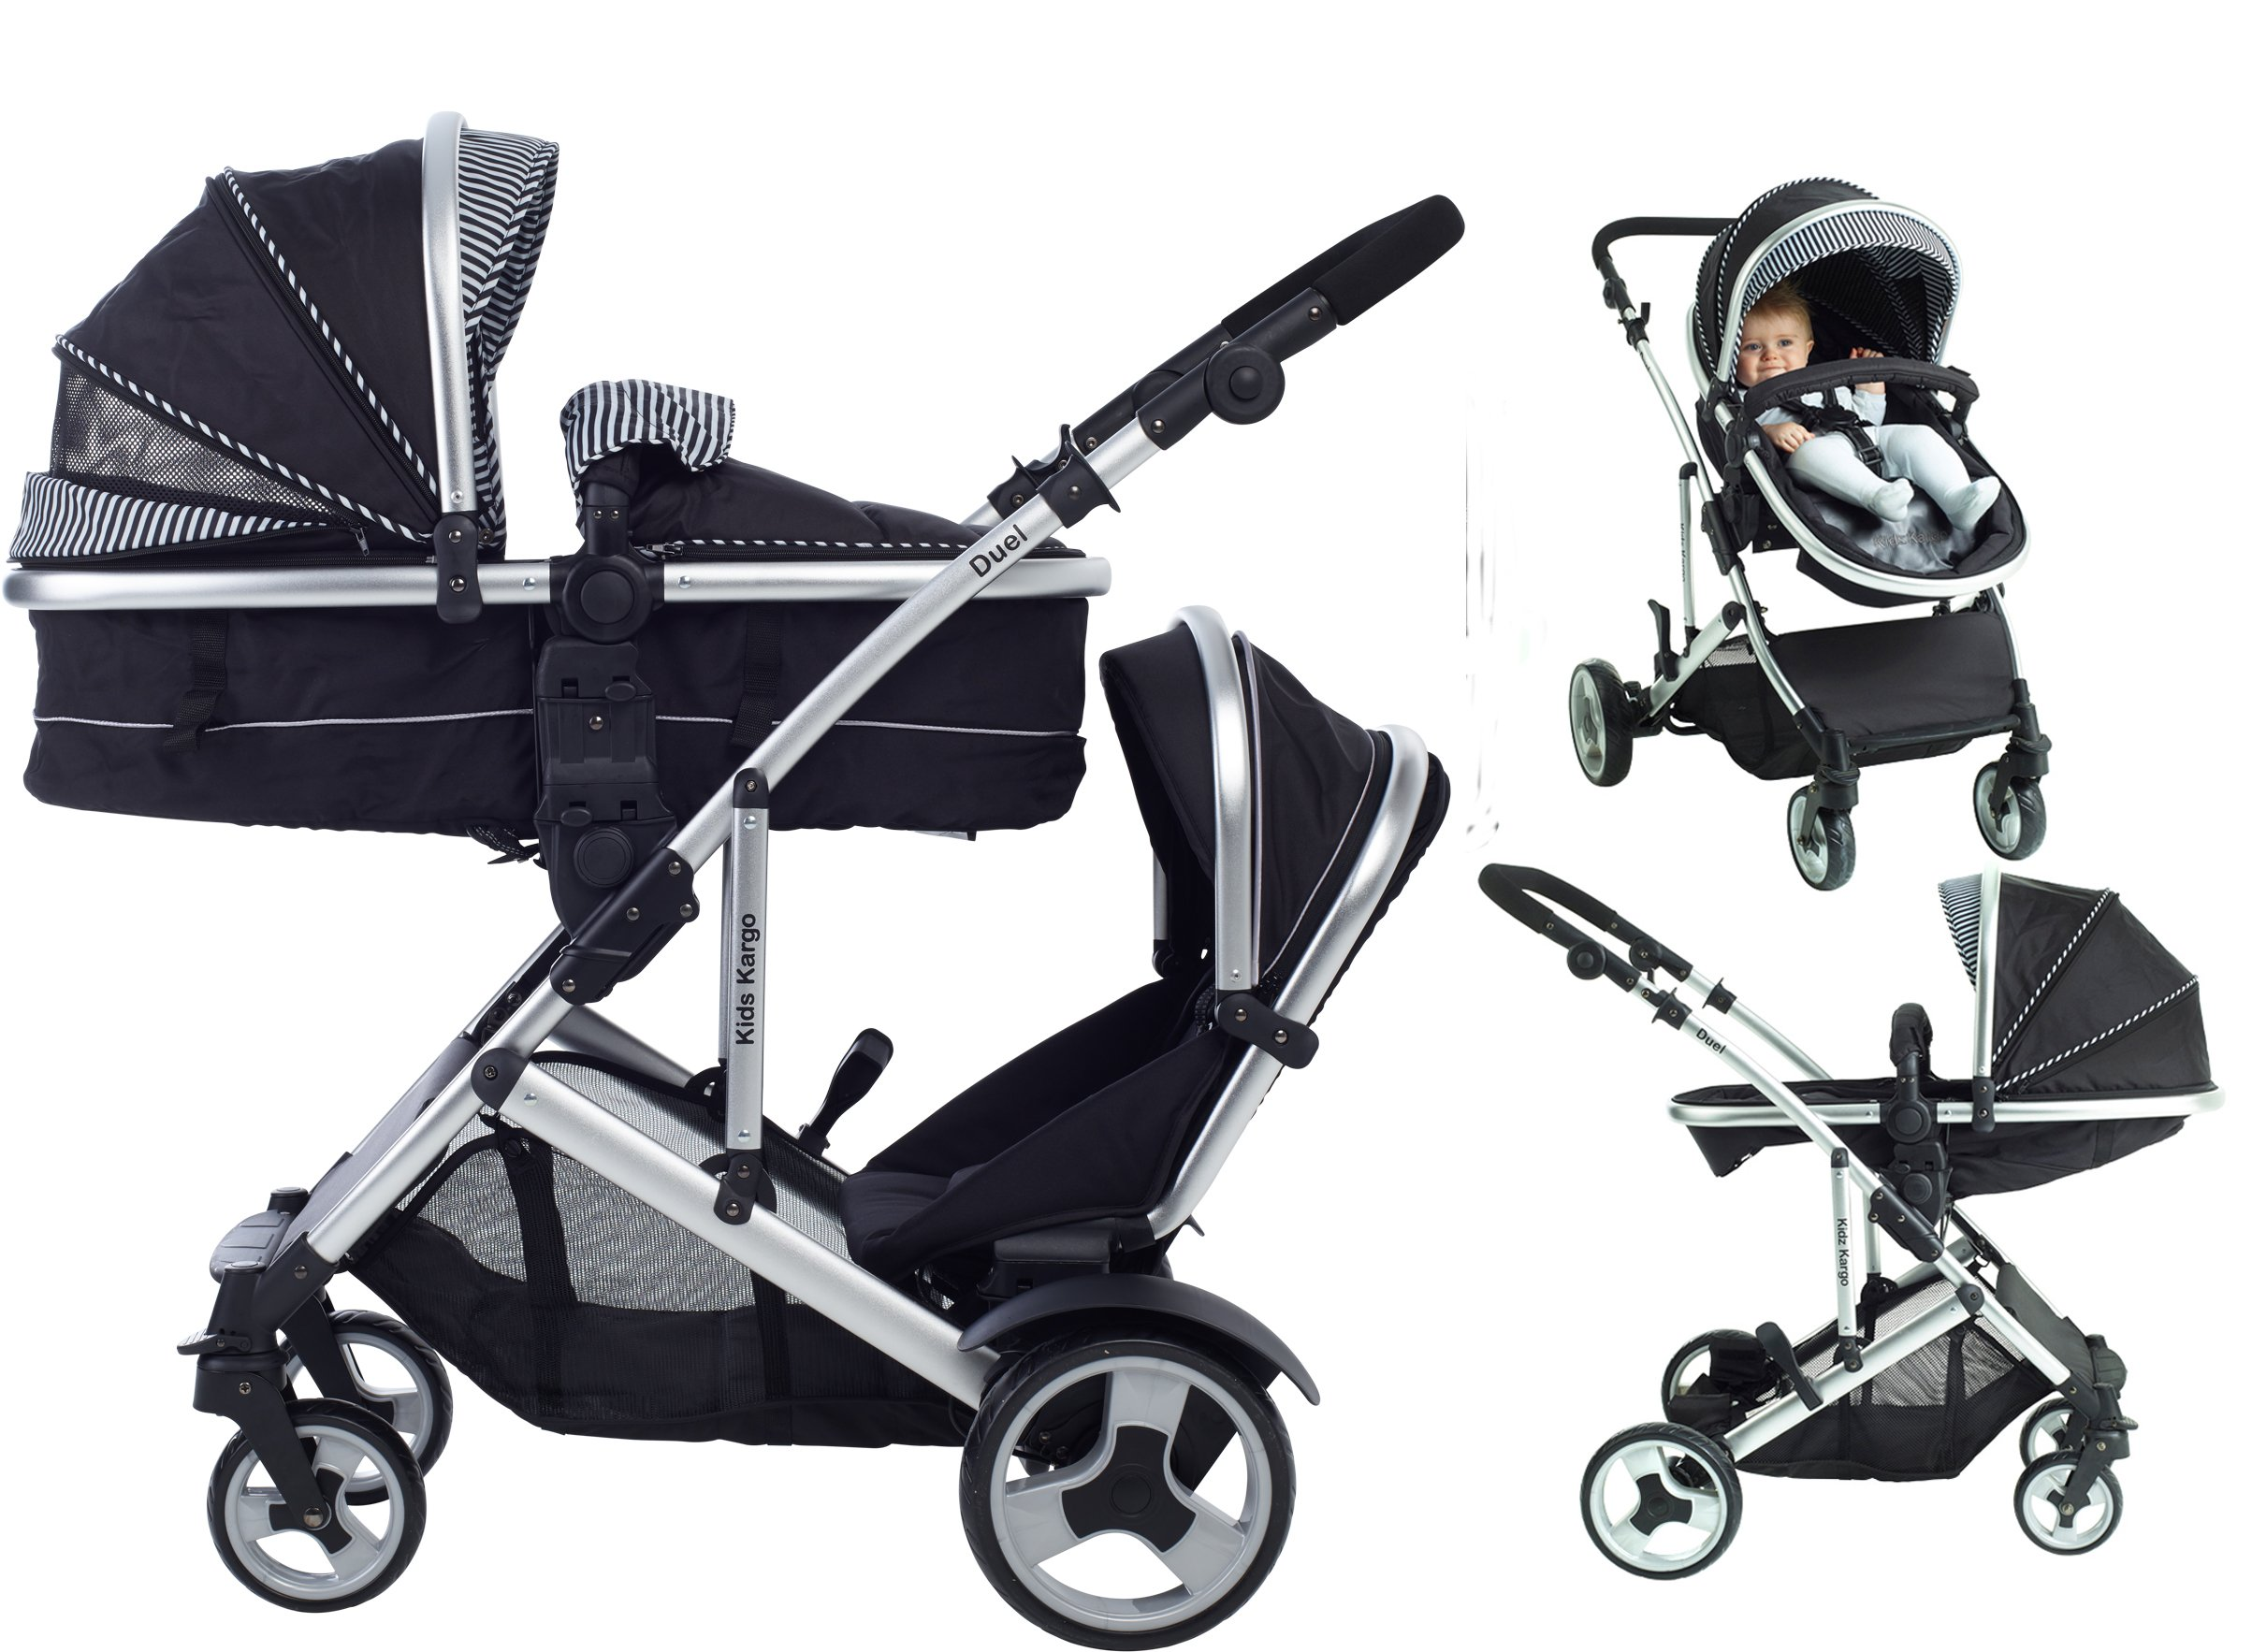 Kids Kargo Duel Combo Tandem Double Pushchair Stroller, Skinnie Minnie Kids Kargo Tandem double pushchair suitable for newborn and toddler Complete with carrycot that converts to a seat unto to grow with your baby. carrycot has soft padded lining which zips off and mattress.. Carrycot & car seats fit in top or bottom position. compatible car seats; kidz kargo 0+, britax babysafe 0+ (no adapters needed) or maxi cosi adaptors 1